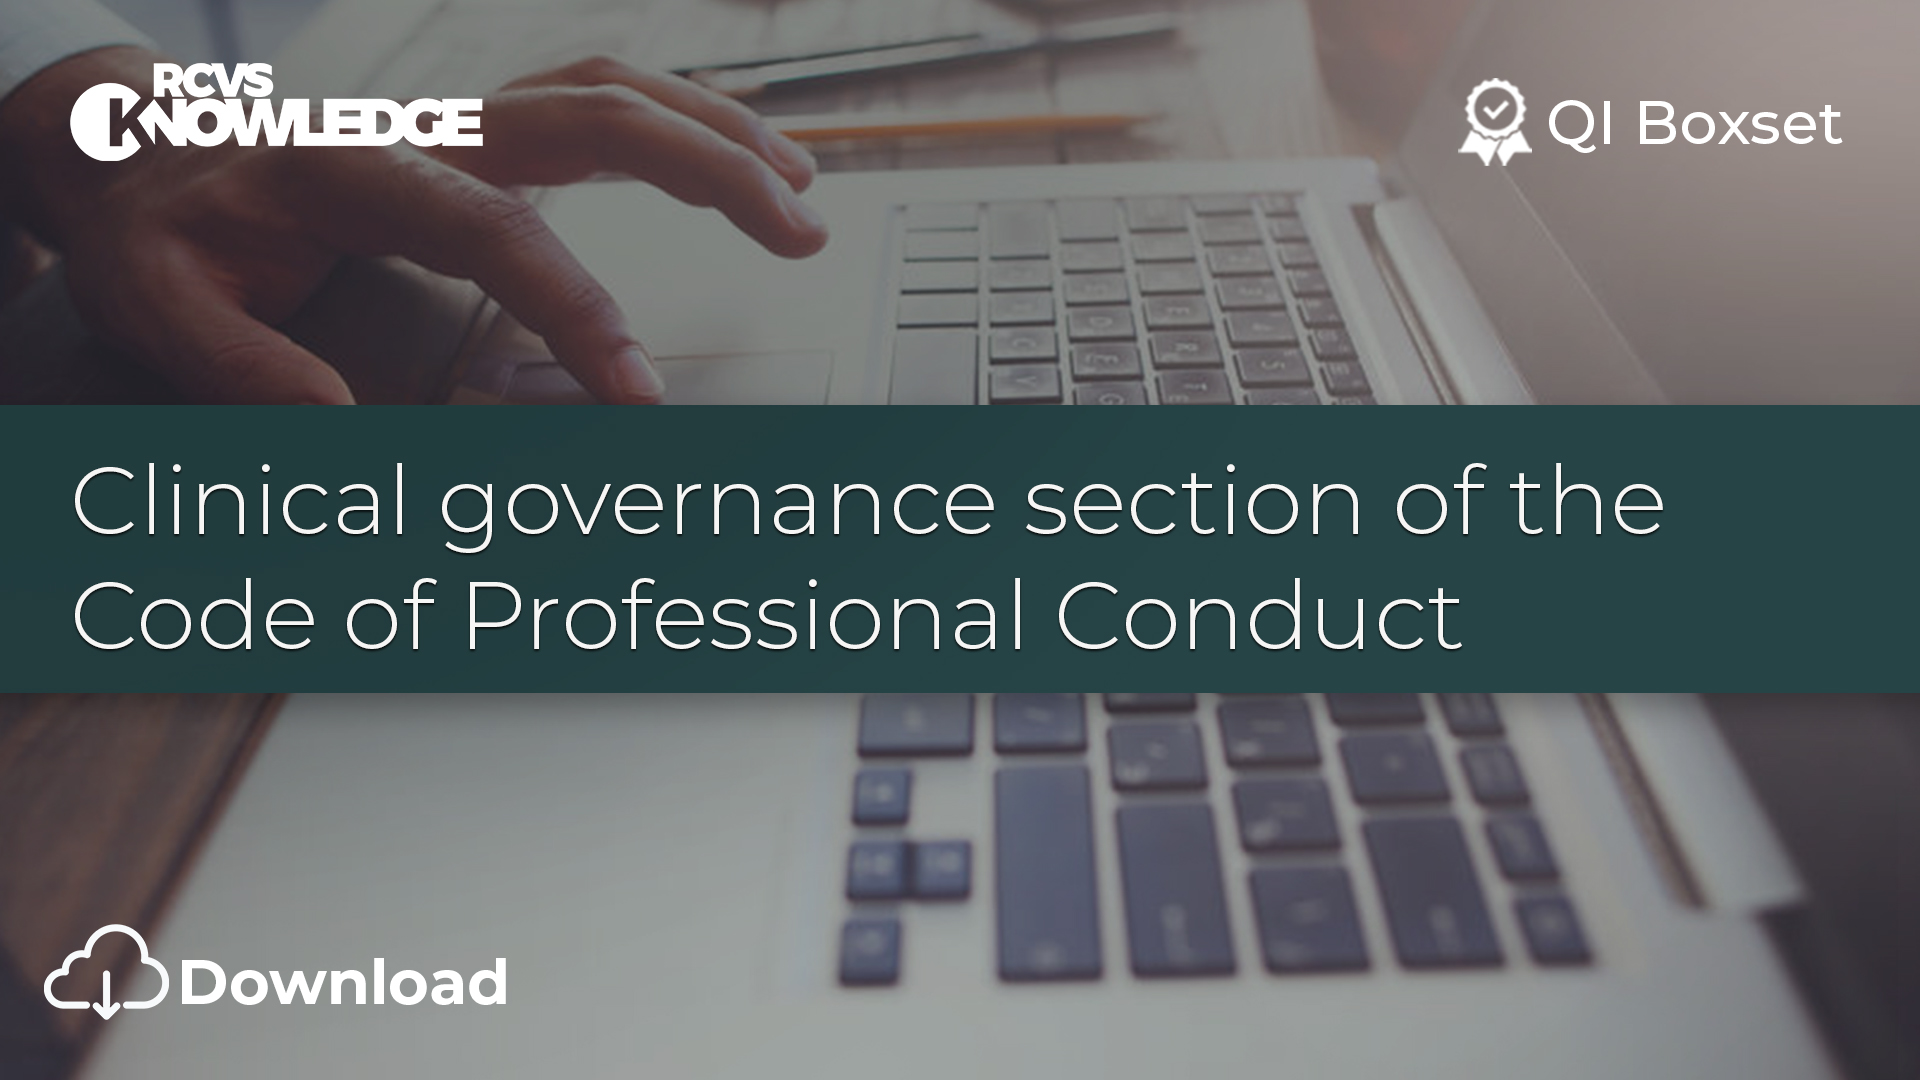 Clinical governance section of the Code of Professional Conduct